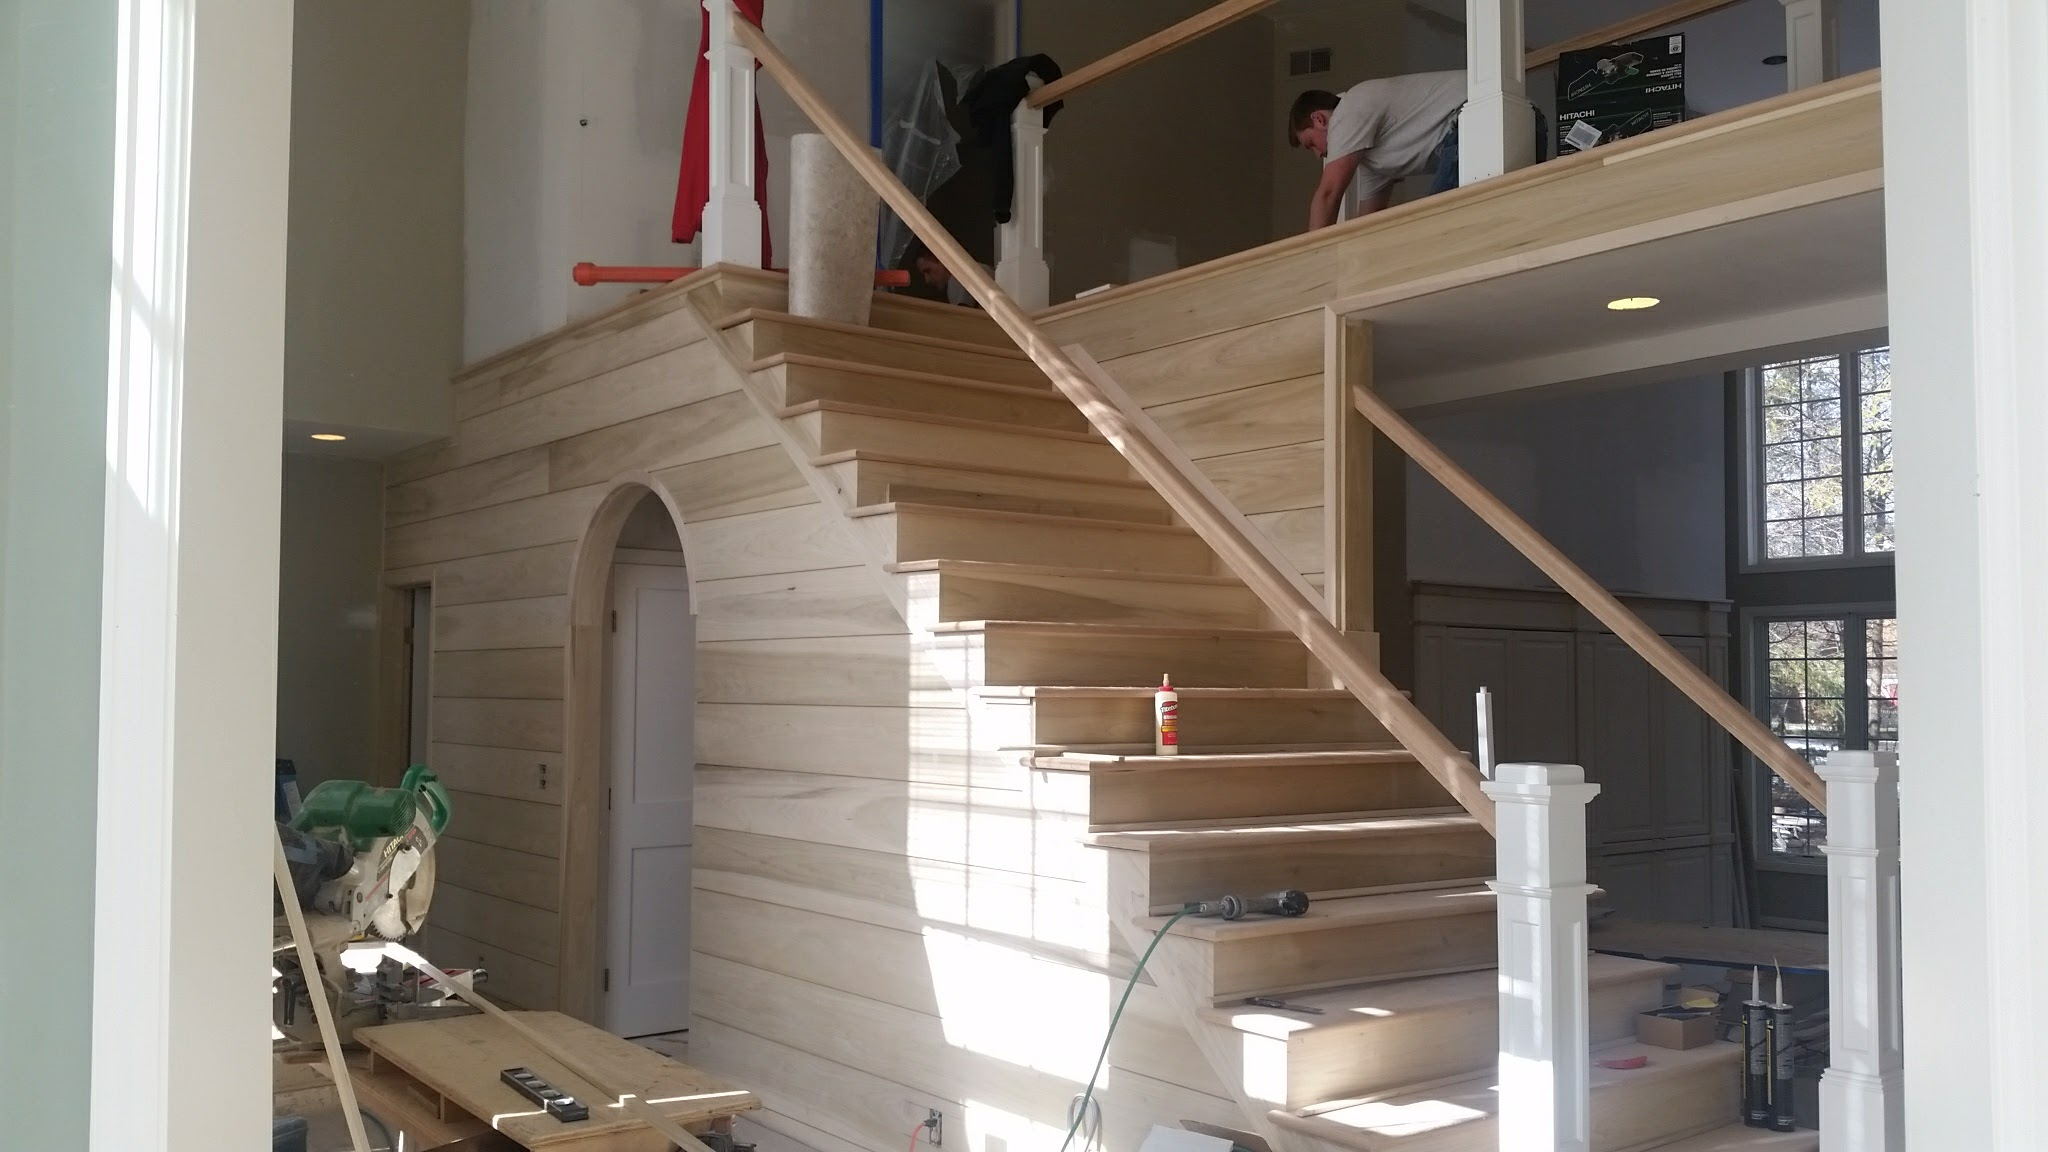 Shiplap foyer and stairwell walls with open-tread stairway sanded and fitted.